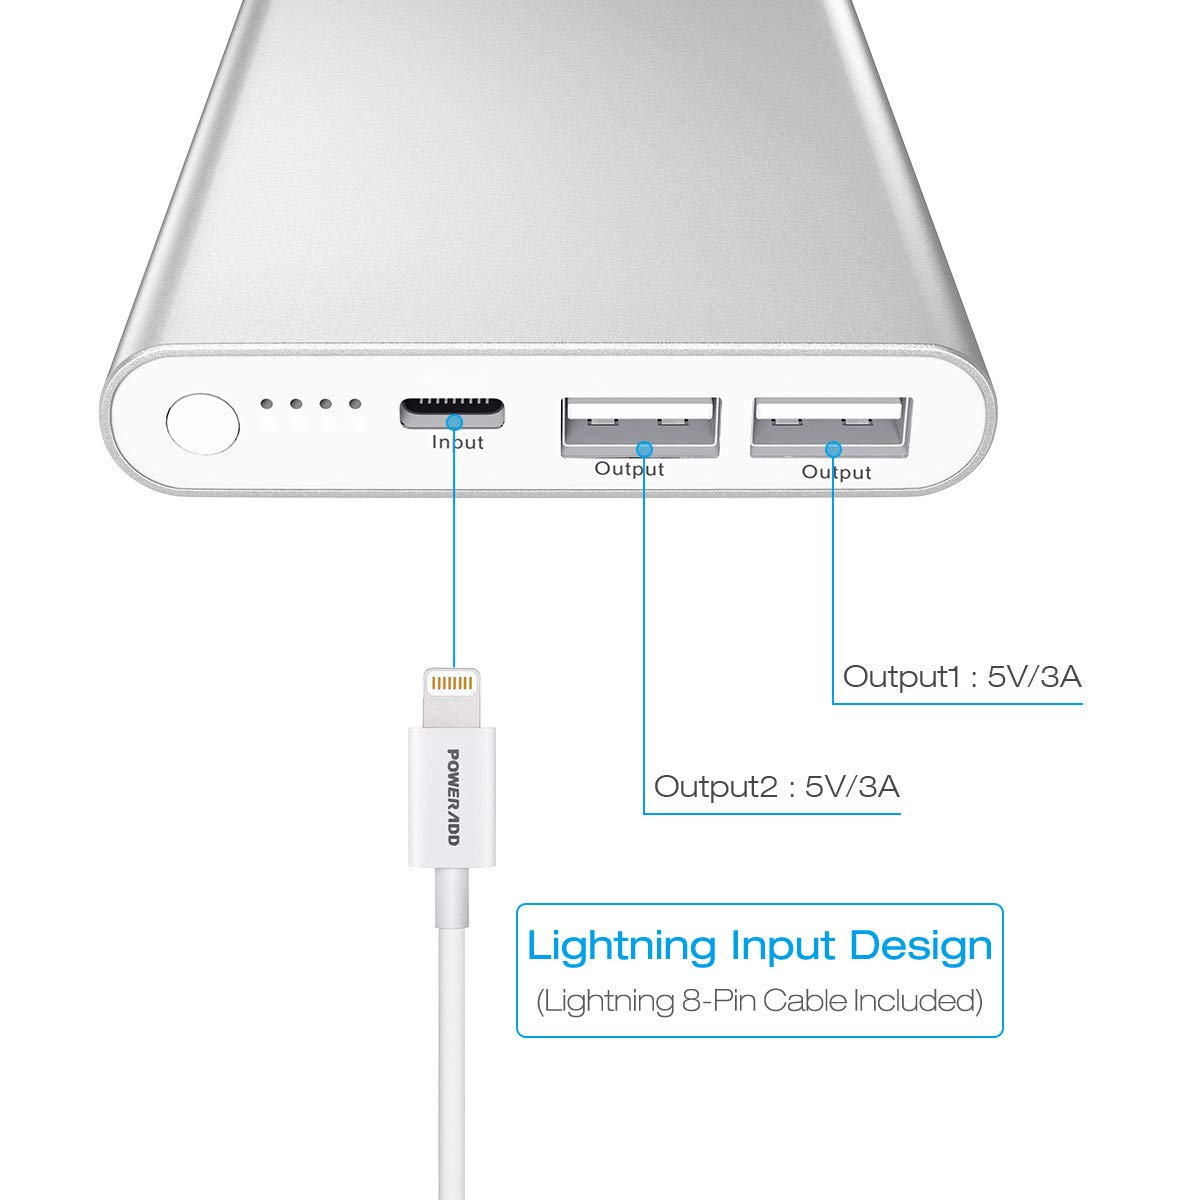 POWERADD Pilot 4GS 12000mAh Portable Charger Lightning Input Power Bank with 3A High-Speed Output Compatible with iPhone, iPad, iPod, Samsung and More - Silver (Lightning Cable Include)